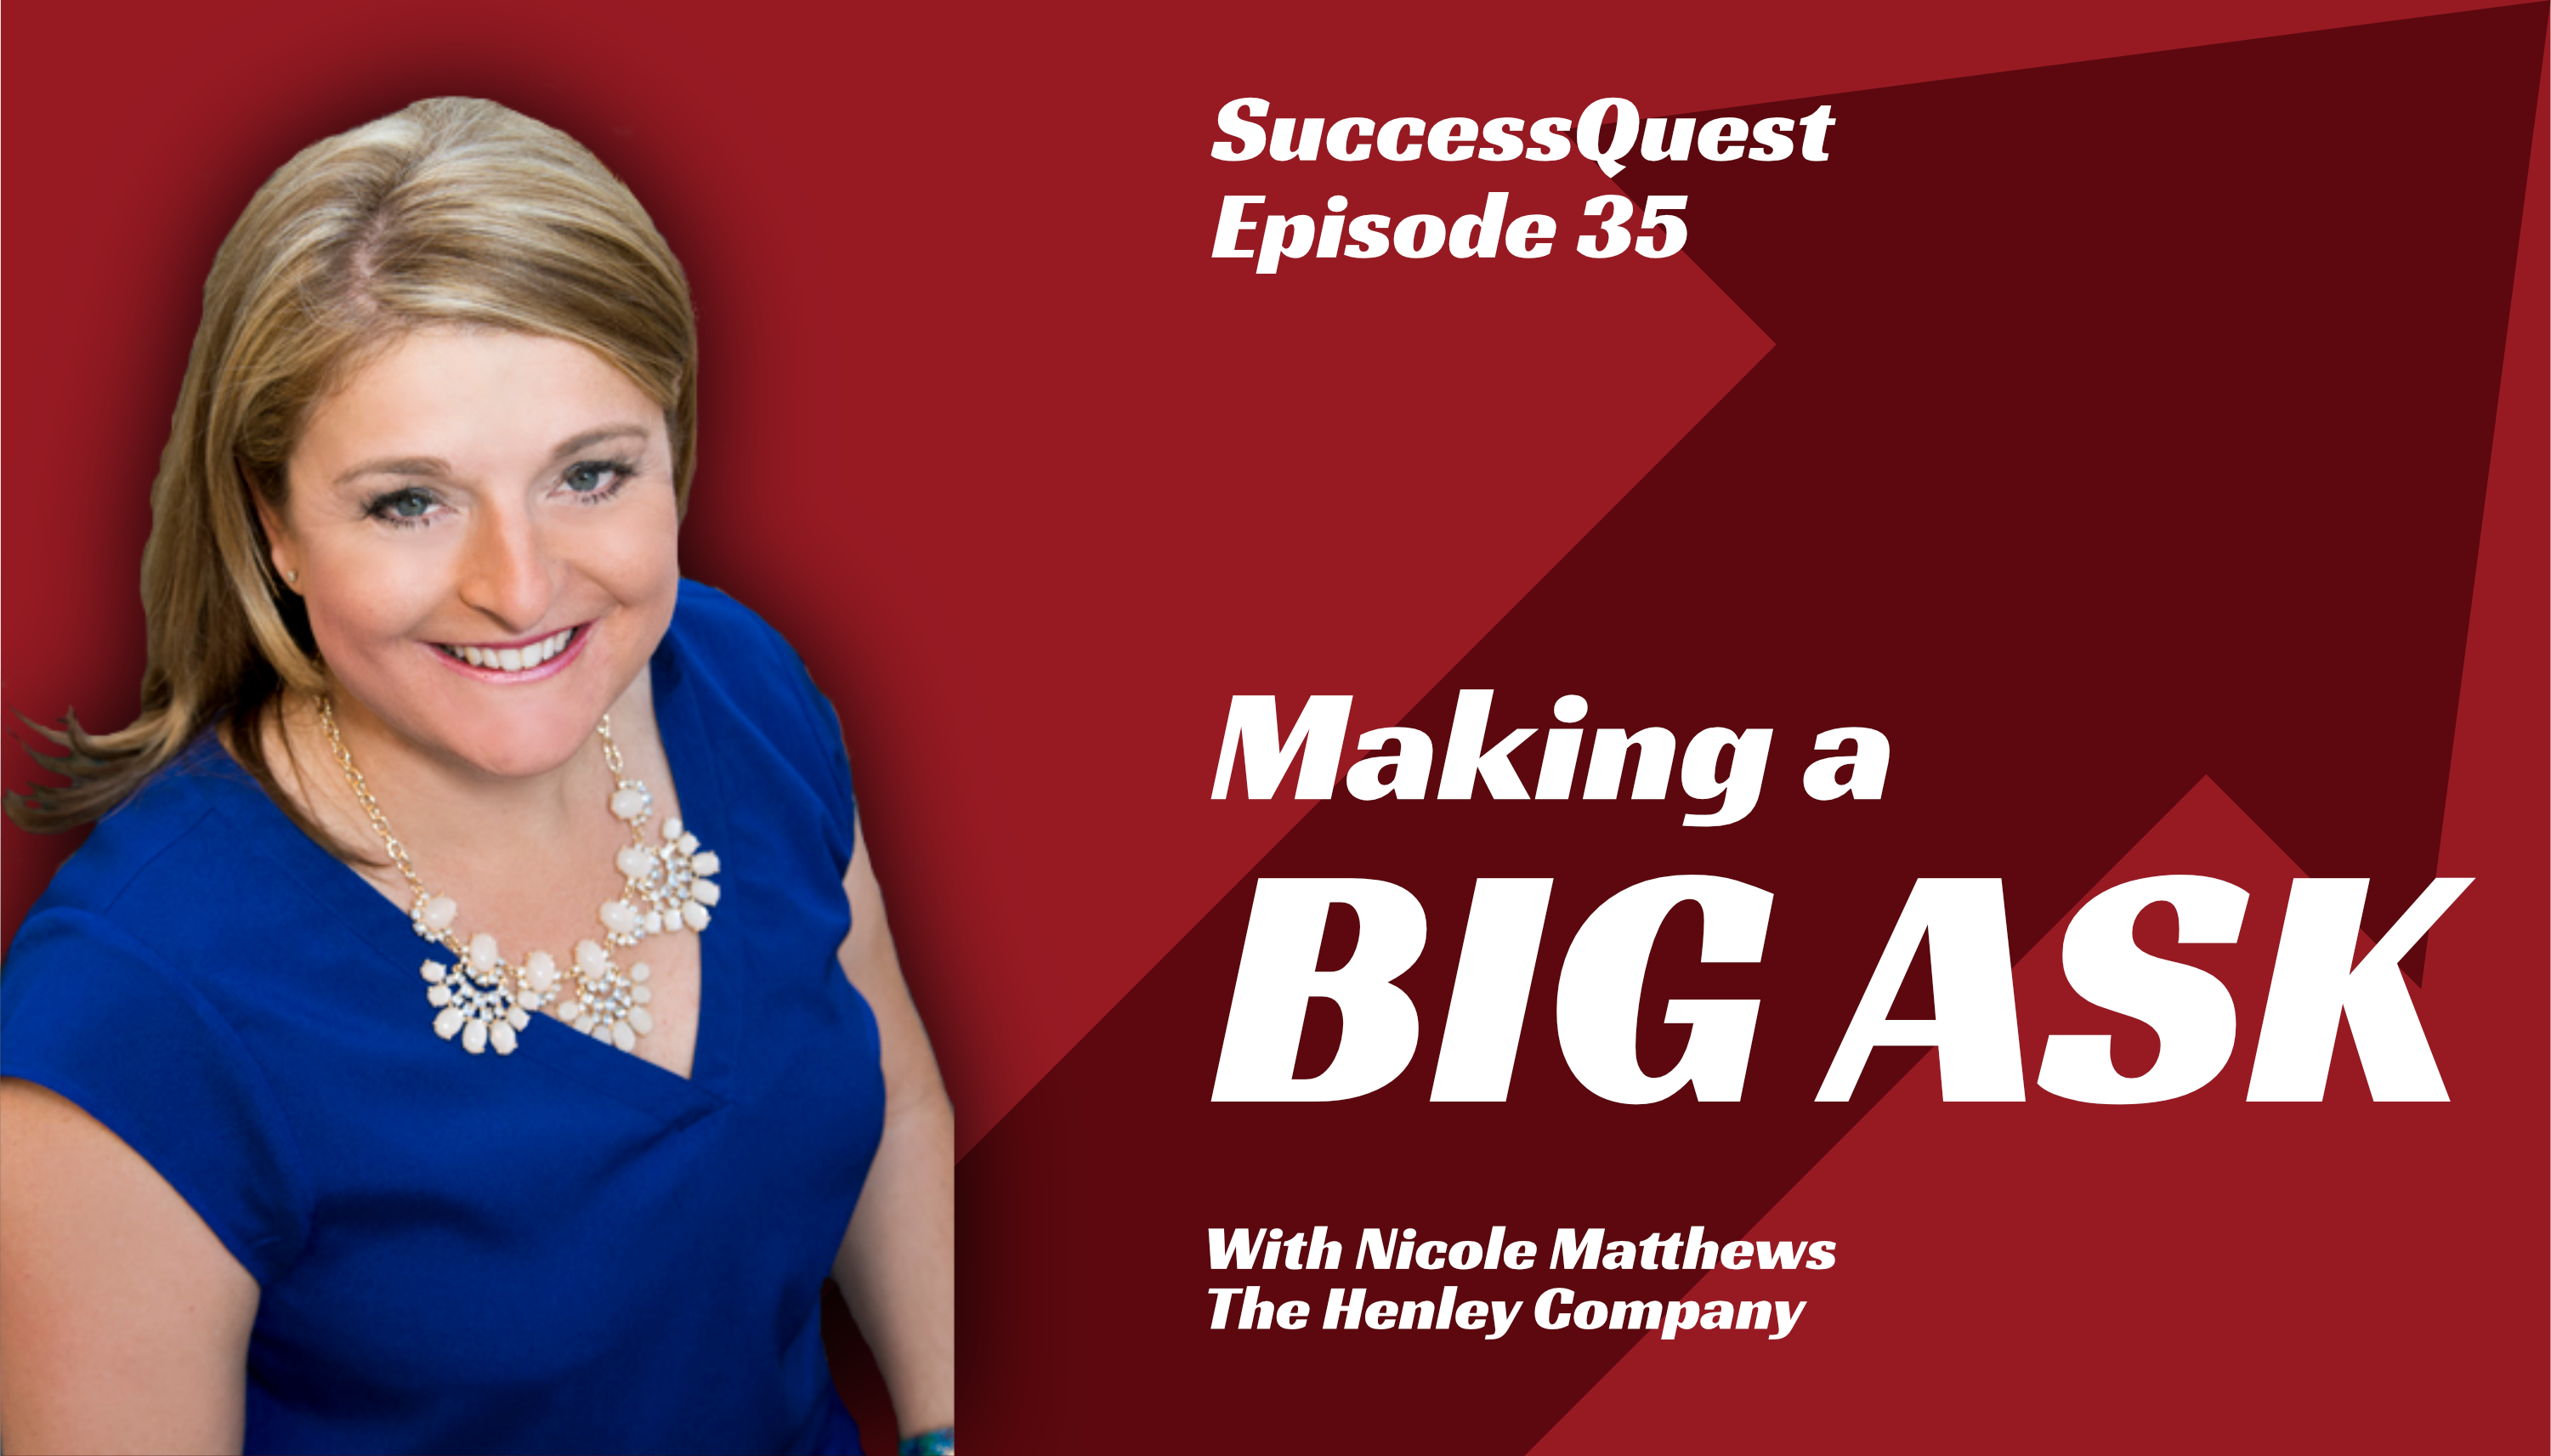 Nicole Matthews Henley Company Success Quest